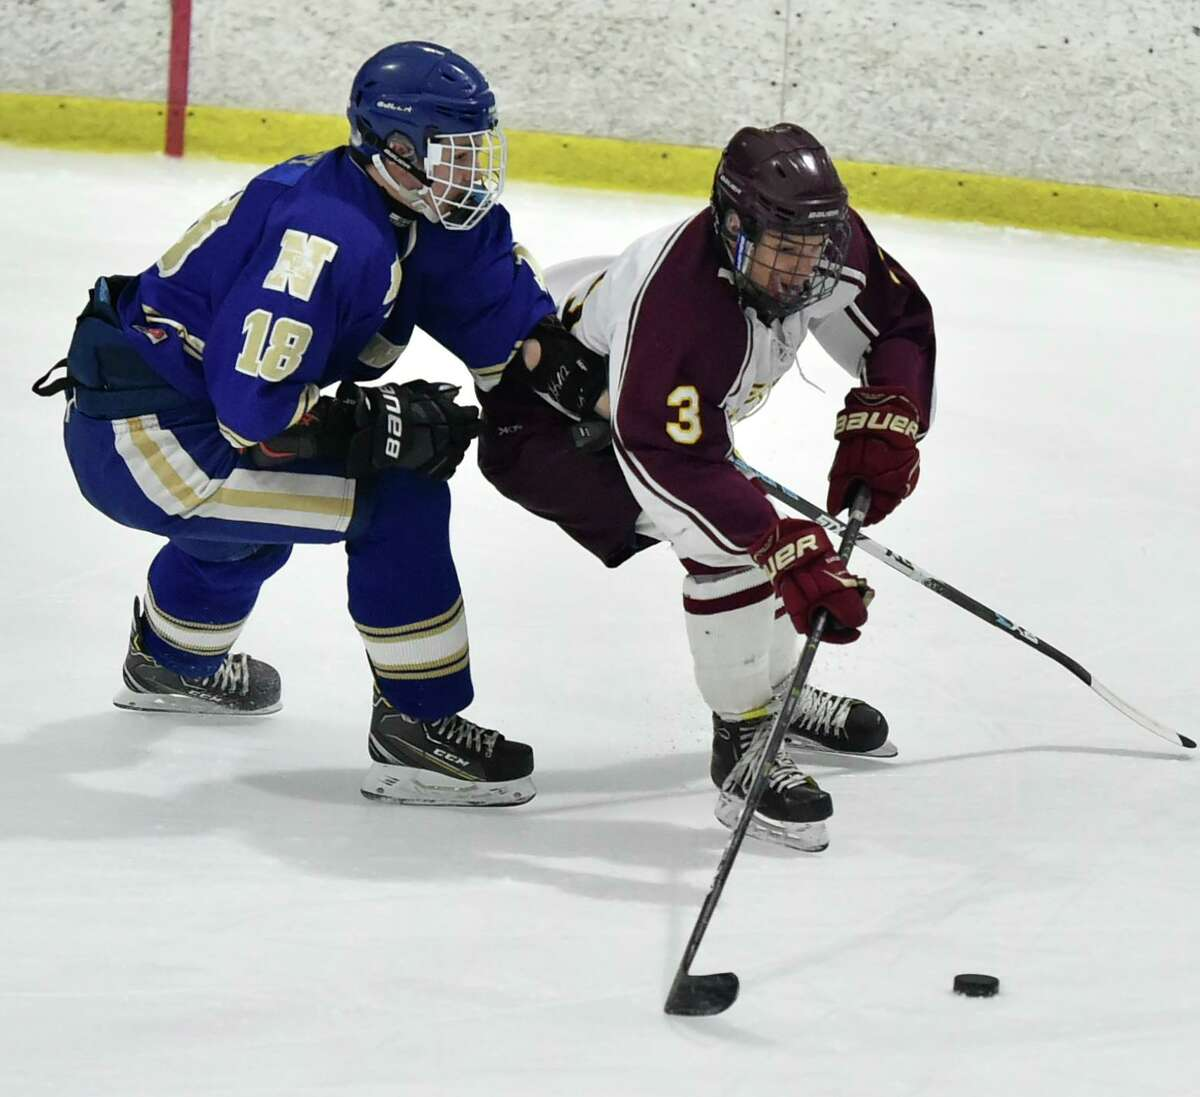 Milford, Connecticut - Tuesday, March 04, 2020: Sheehan H.S. vs. Newtown during the first period of the SCC/SWC 2020 Boys Ice Hockey Division III semifinals Tuesday evening at the Milford Ice Arena in Milford.